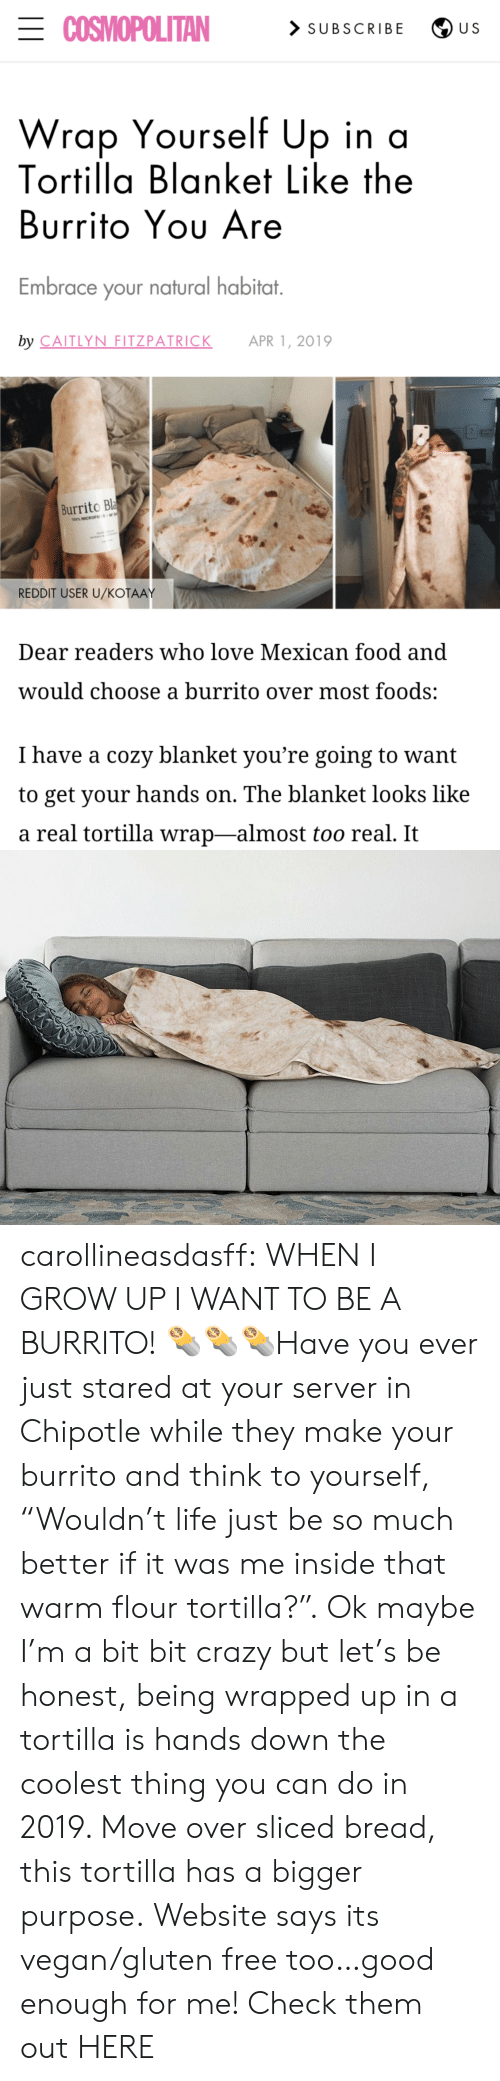 "Mexican: ECOSMOPOLITAN  > SUBSCRIBE  U S  Wrap Yourself Up in a  Tortilla Blanket Like the  Burrito Yου Are  Embrace your natural habitat.  by CAITLYN FITZPATRICK  APR 1, 2019  Burrito Bla  100% MICROFE  REDDIT USER U/KOŤAAY  Dear readers who love Mexican food and  would choose a burrito over most foods:  I have a cozy blanket you're going to want  to get your hands on. The blanket looks like  a real tortilla wrap-almost too real. It carollineasdasff: WHEN I GROW UP I WANT TO BE A BURRITO! 🌯🌯🌯Have you ever just stared at your server in Chipotle while they make your burrito and think to yourself, ""Wouldn't life just be so much better if it was me inside that warm flour tortilla?"". Ok maybe I'm a bit bit crazy but let's be honest, being wrapped up in a tortilla is hands down the coolest thing you can do in 2019. Move over sliced bread, this tortilla has a bigger purpose. Website says its vegan/gluten free too…good enough for me! Check them out HERE"